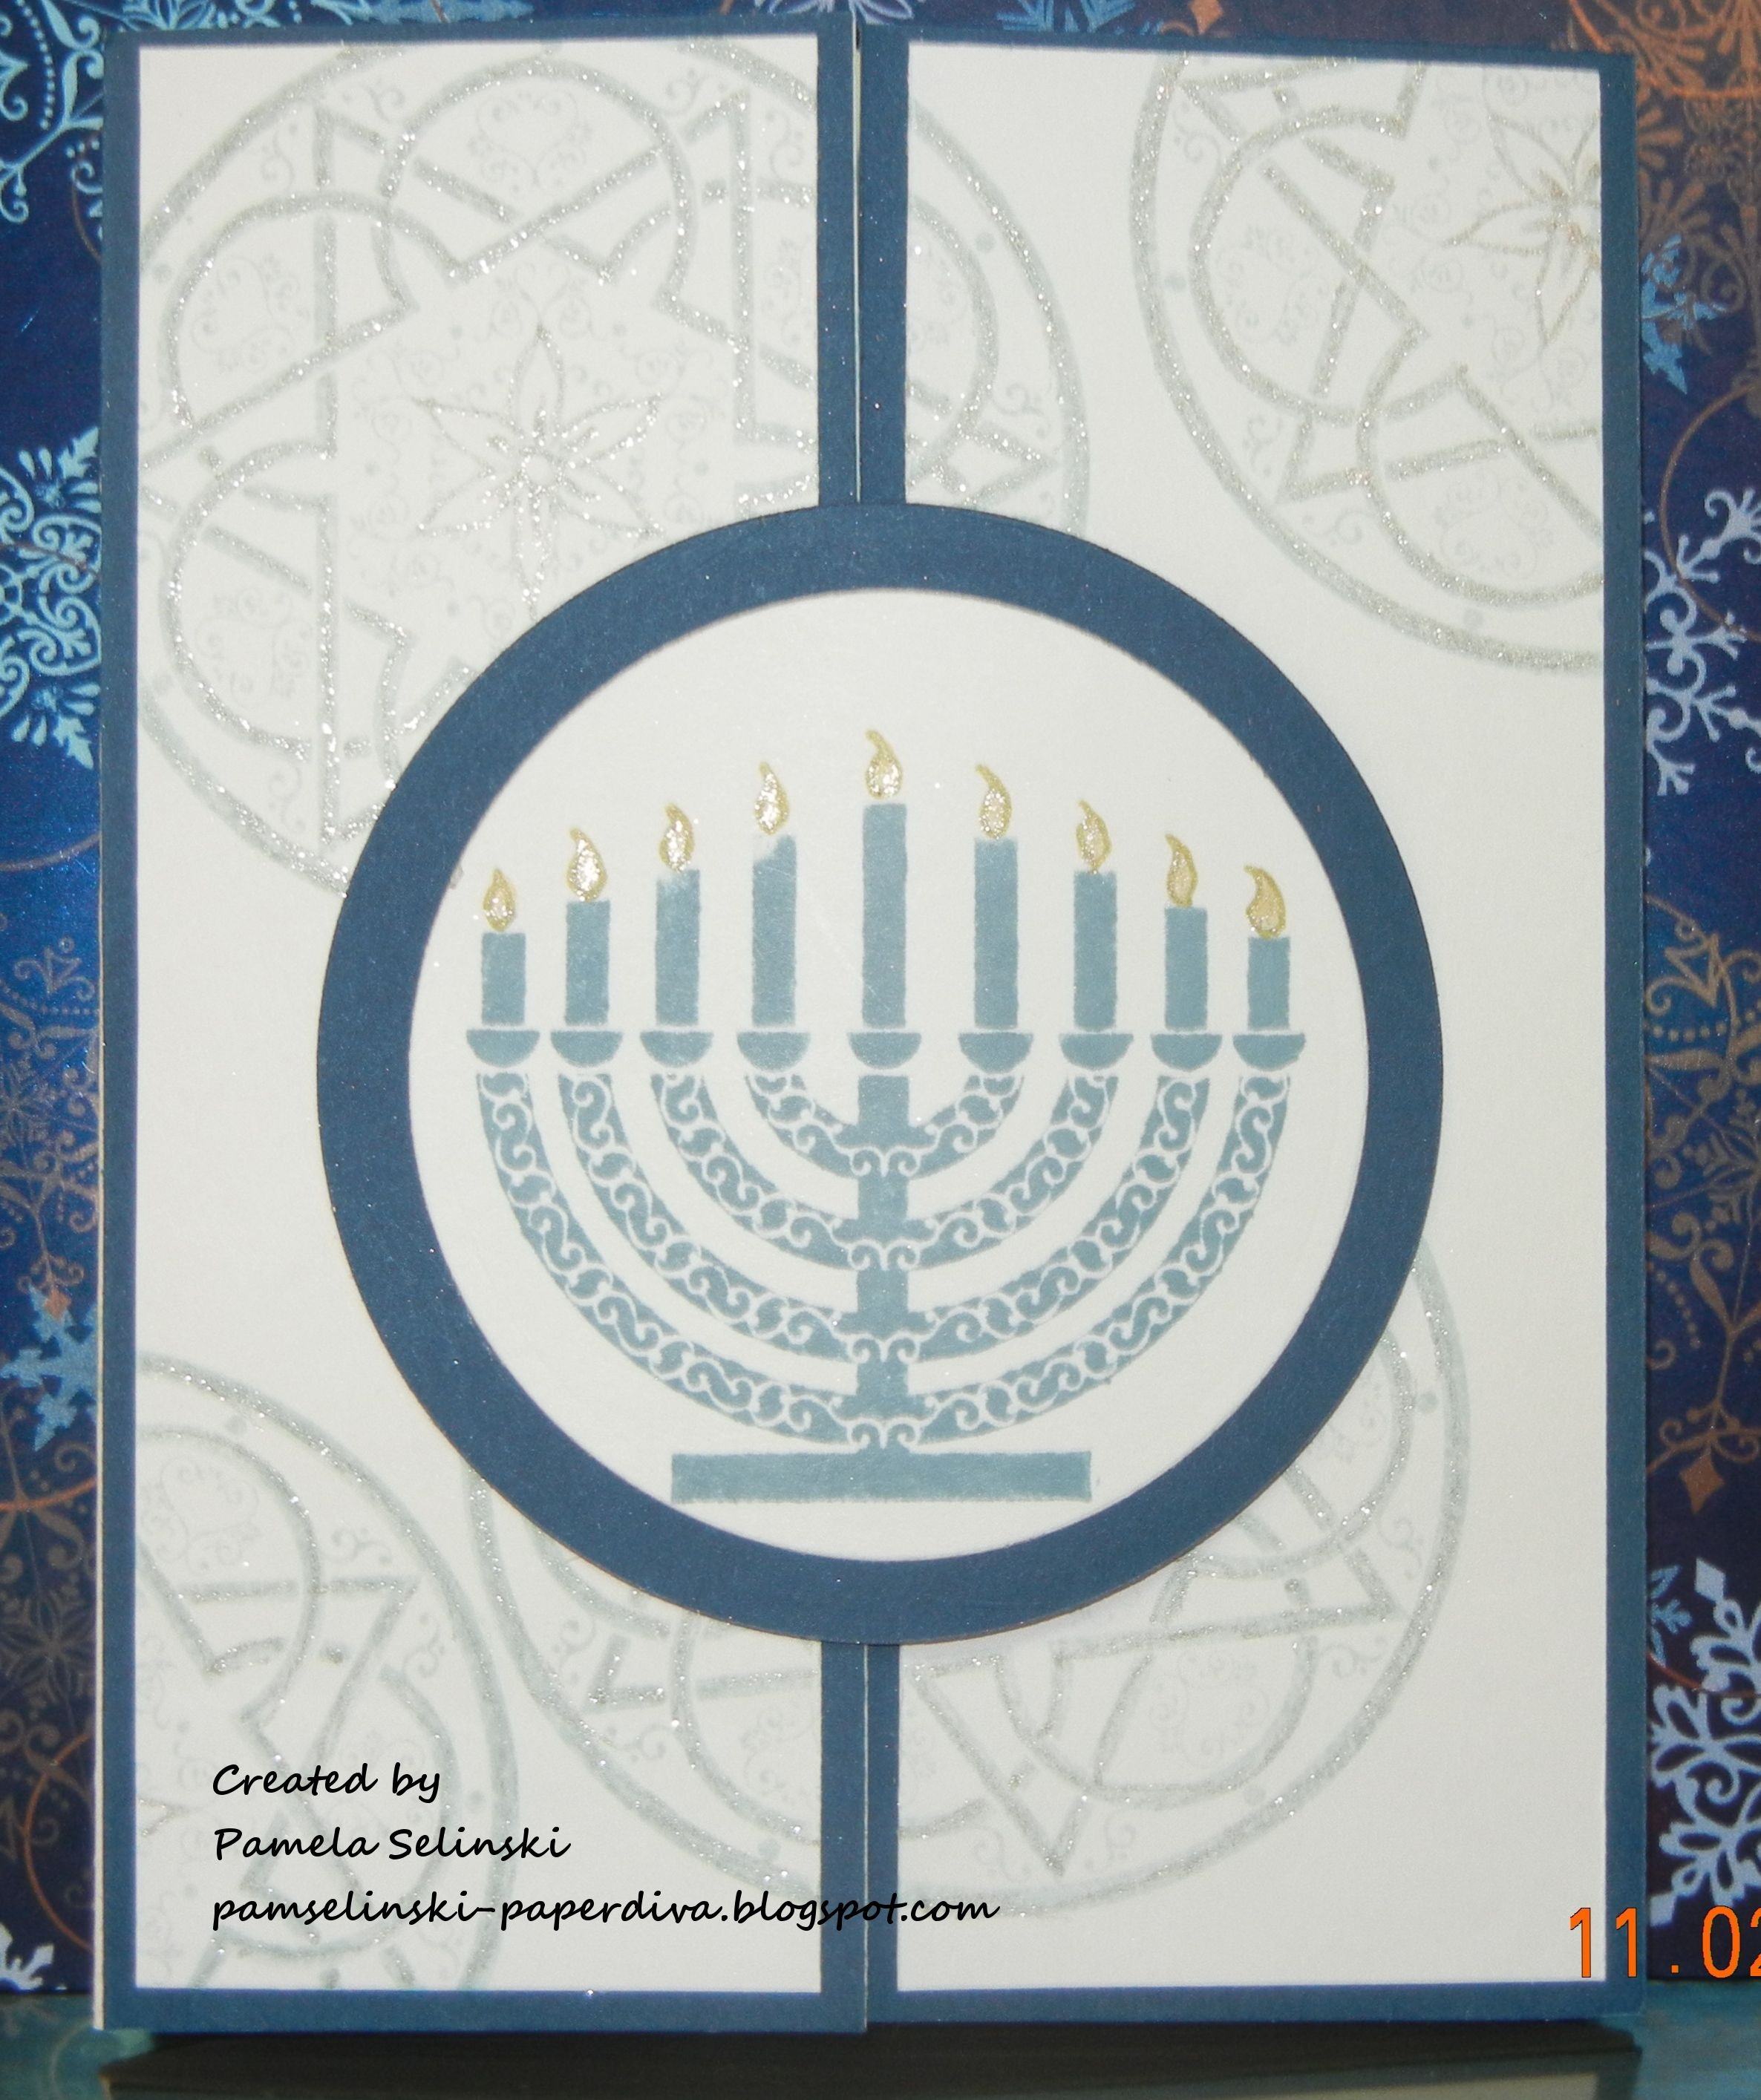 This is an image of Universal Printable Hanukkah Cards